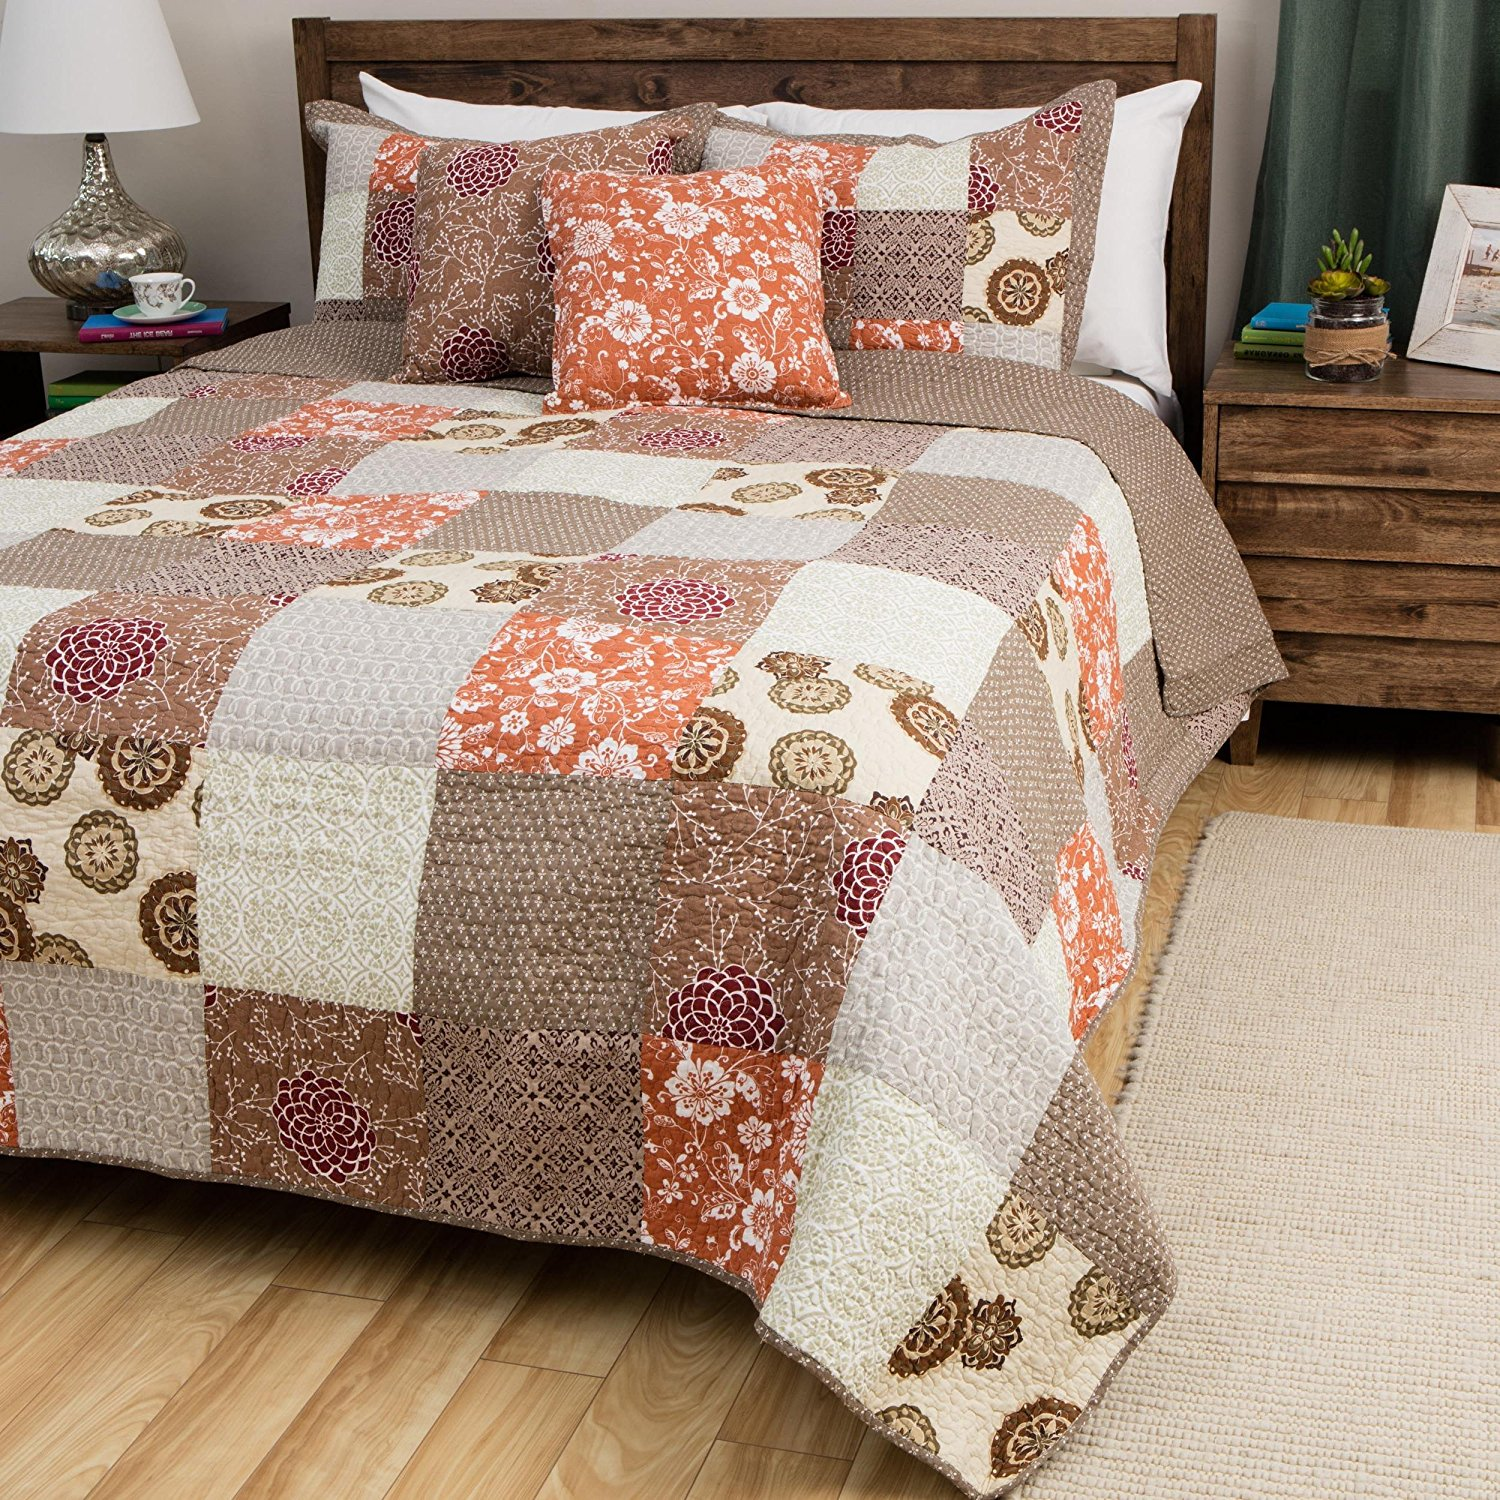 2 Piece Grey Floral Twin Size Patchwork Quilt, Oversized Brown Beige Medallion Geometric, Orange White Flowers Geometrical Burgundy Spring Soft Gray, Reversible, Cotton, Synthetic Fiber